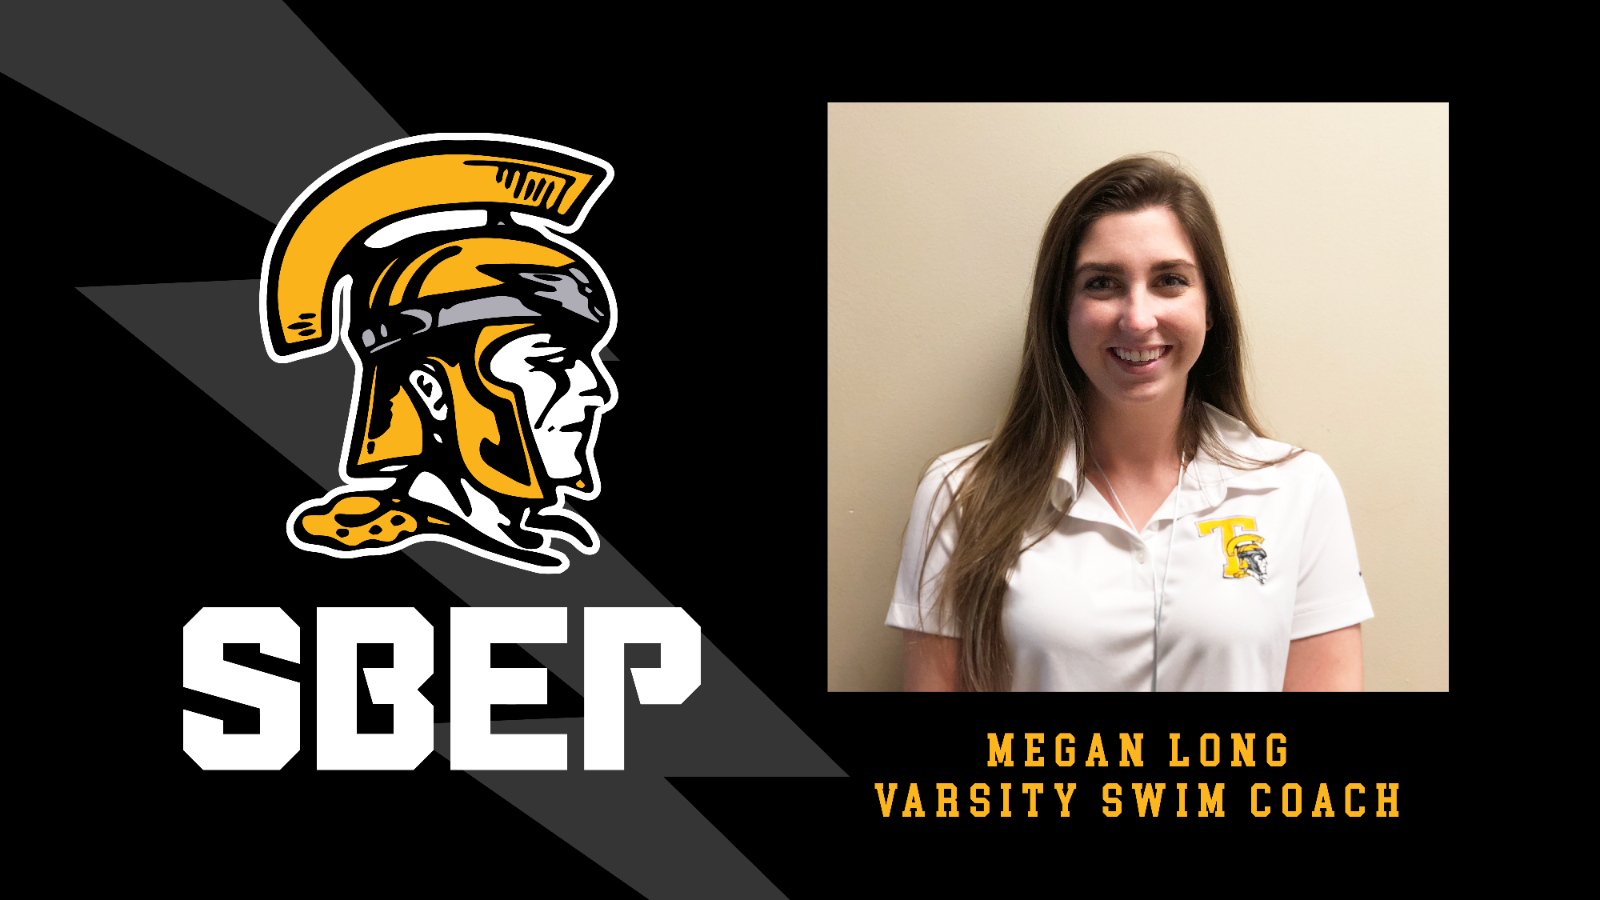 New Titan Swim Coach Announced